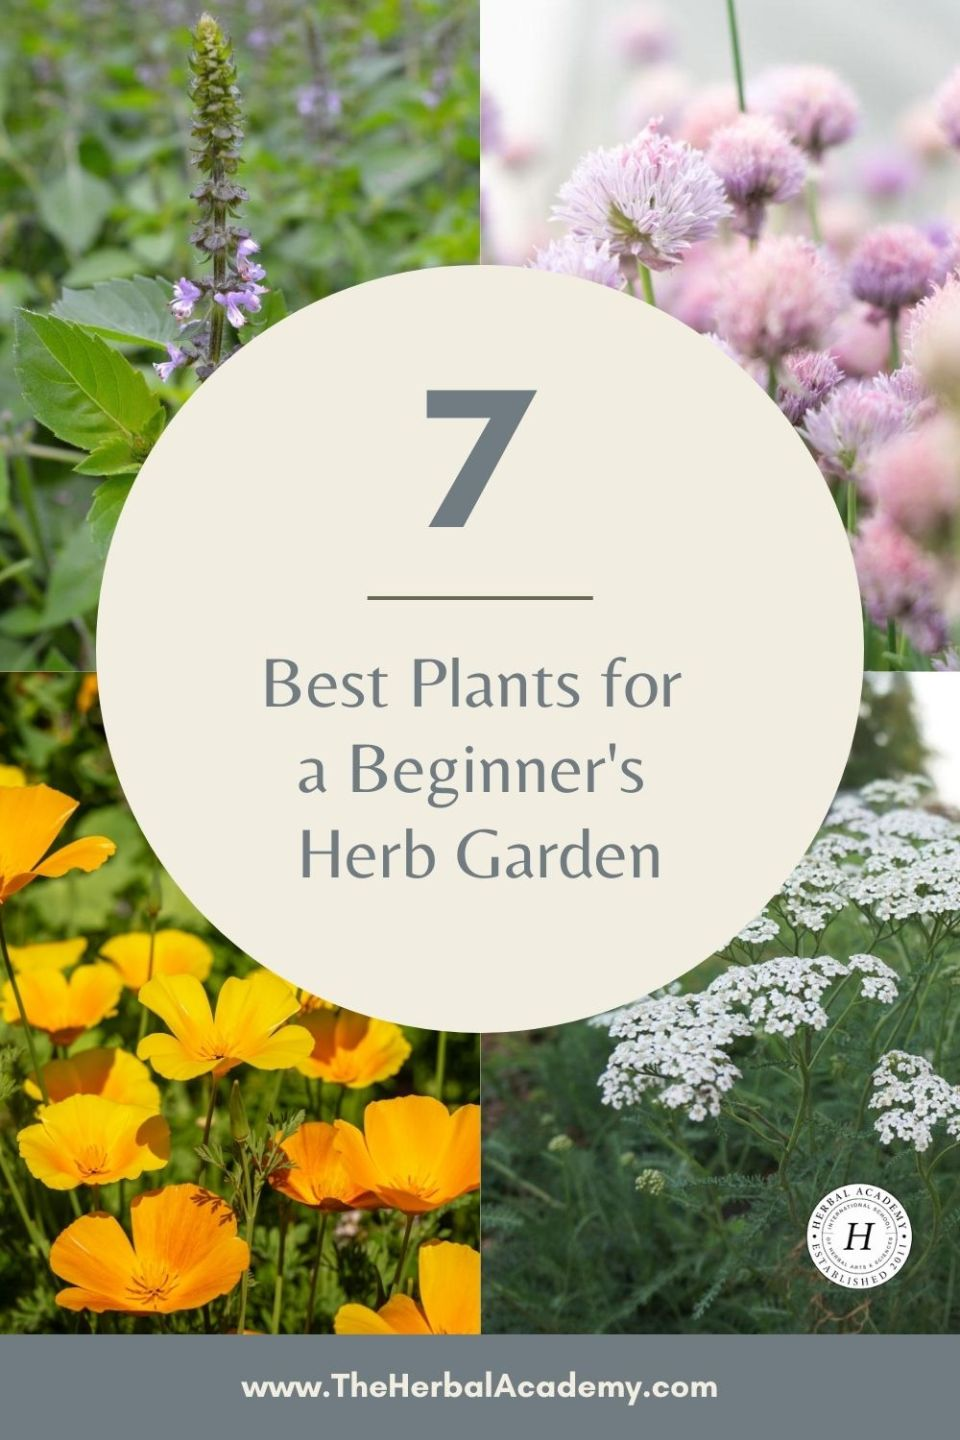 7 Best Plants for a Beginner's Herb Garden | Herbal Academy | In this article, we share seven easy-to-grow and useful herbs for a beginner's herb garden, along with tips for using and growing each one.